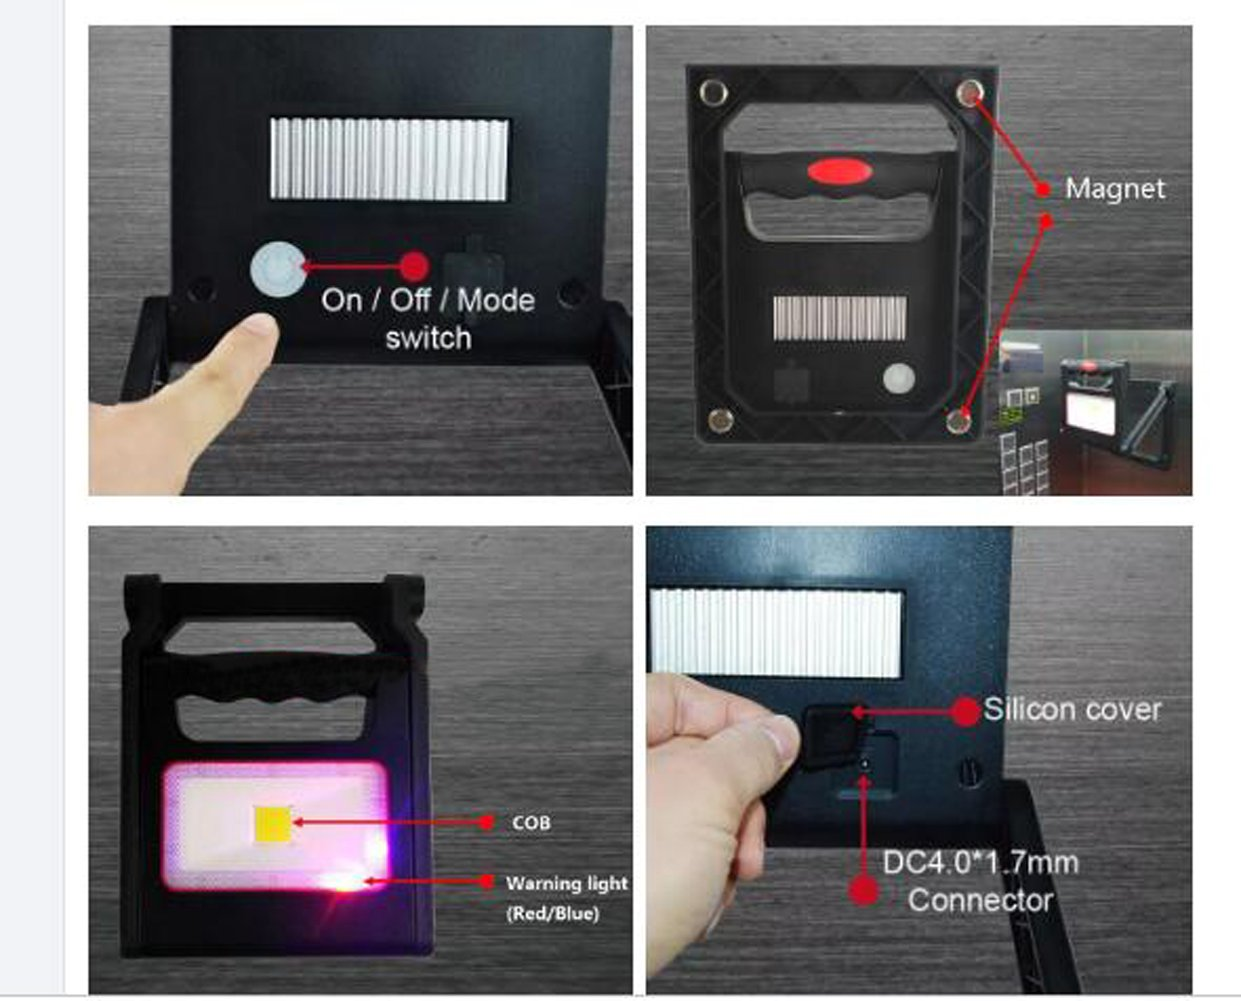 AliTronics Rechargable and Portable 10W Led Work Light Emergency and Flashlight Function,Folding and 360 degree Adjustable